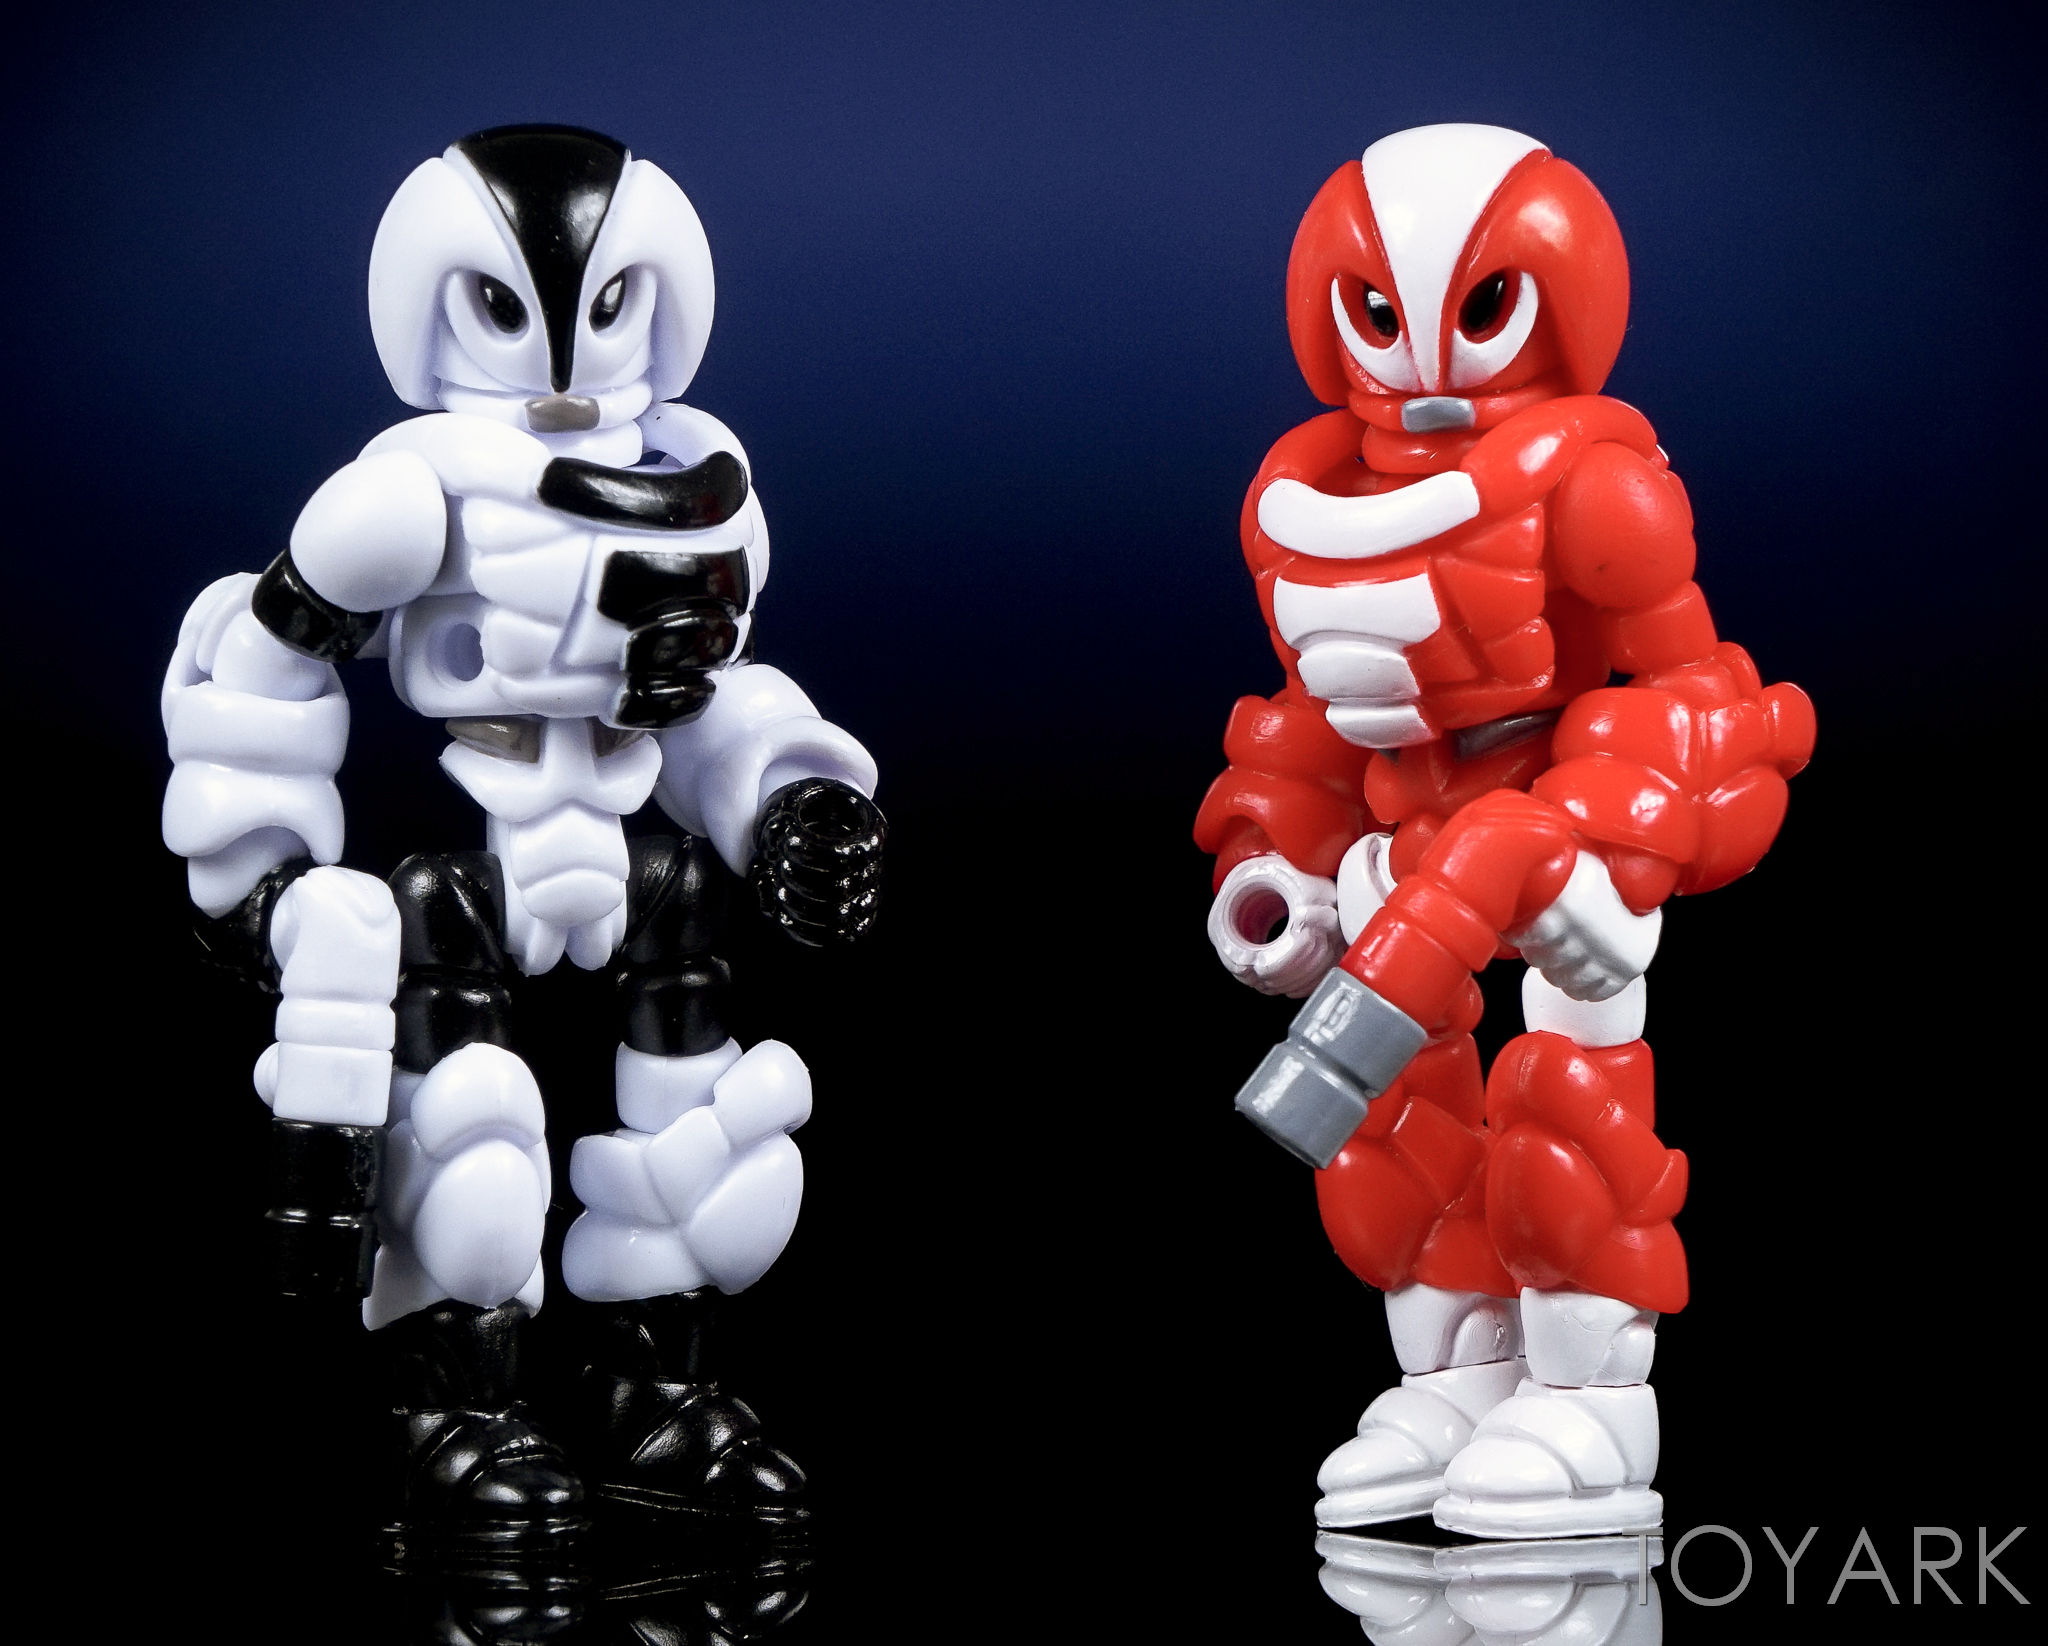 http://news.toyark.com/wp-content/uploads/sites/4/2016/10/Toyfinity-Roboforce-and-Zeroids-044.jpg